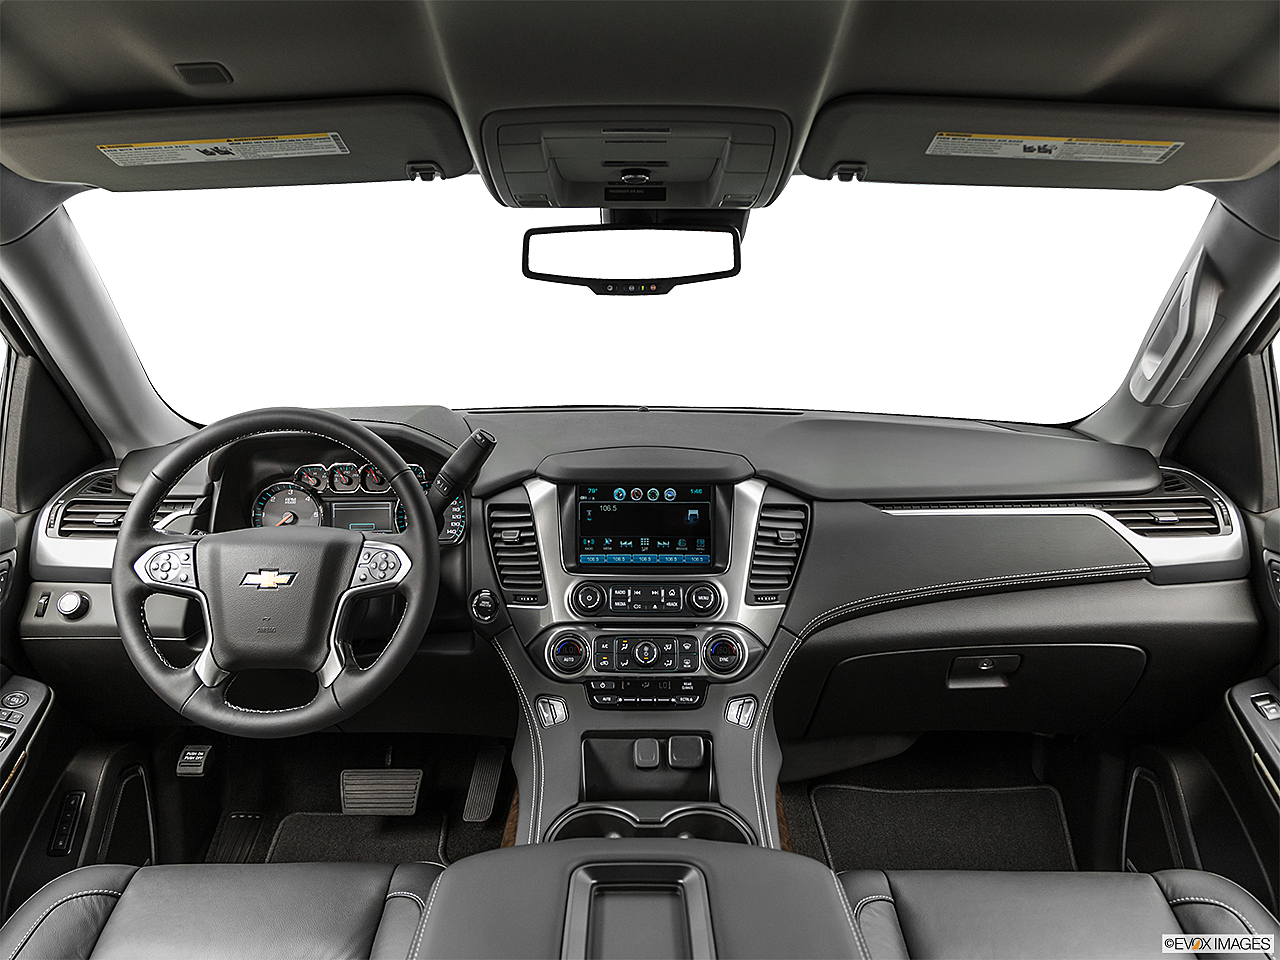 2019 Chevrolet Tahoe LT, centered wide dash shot